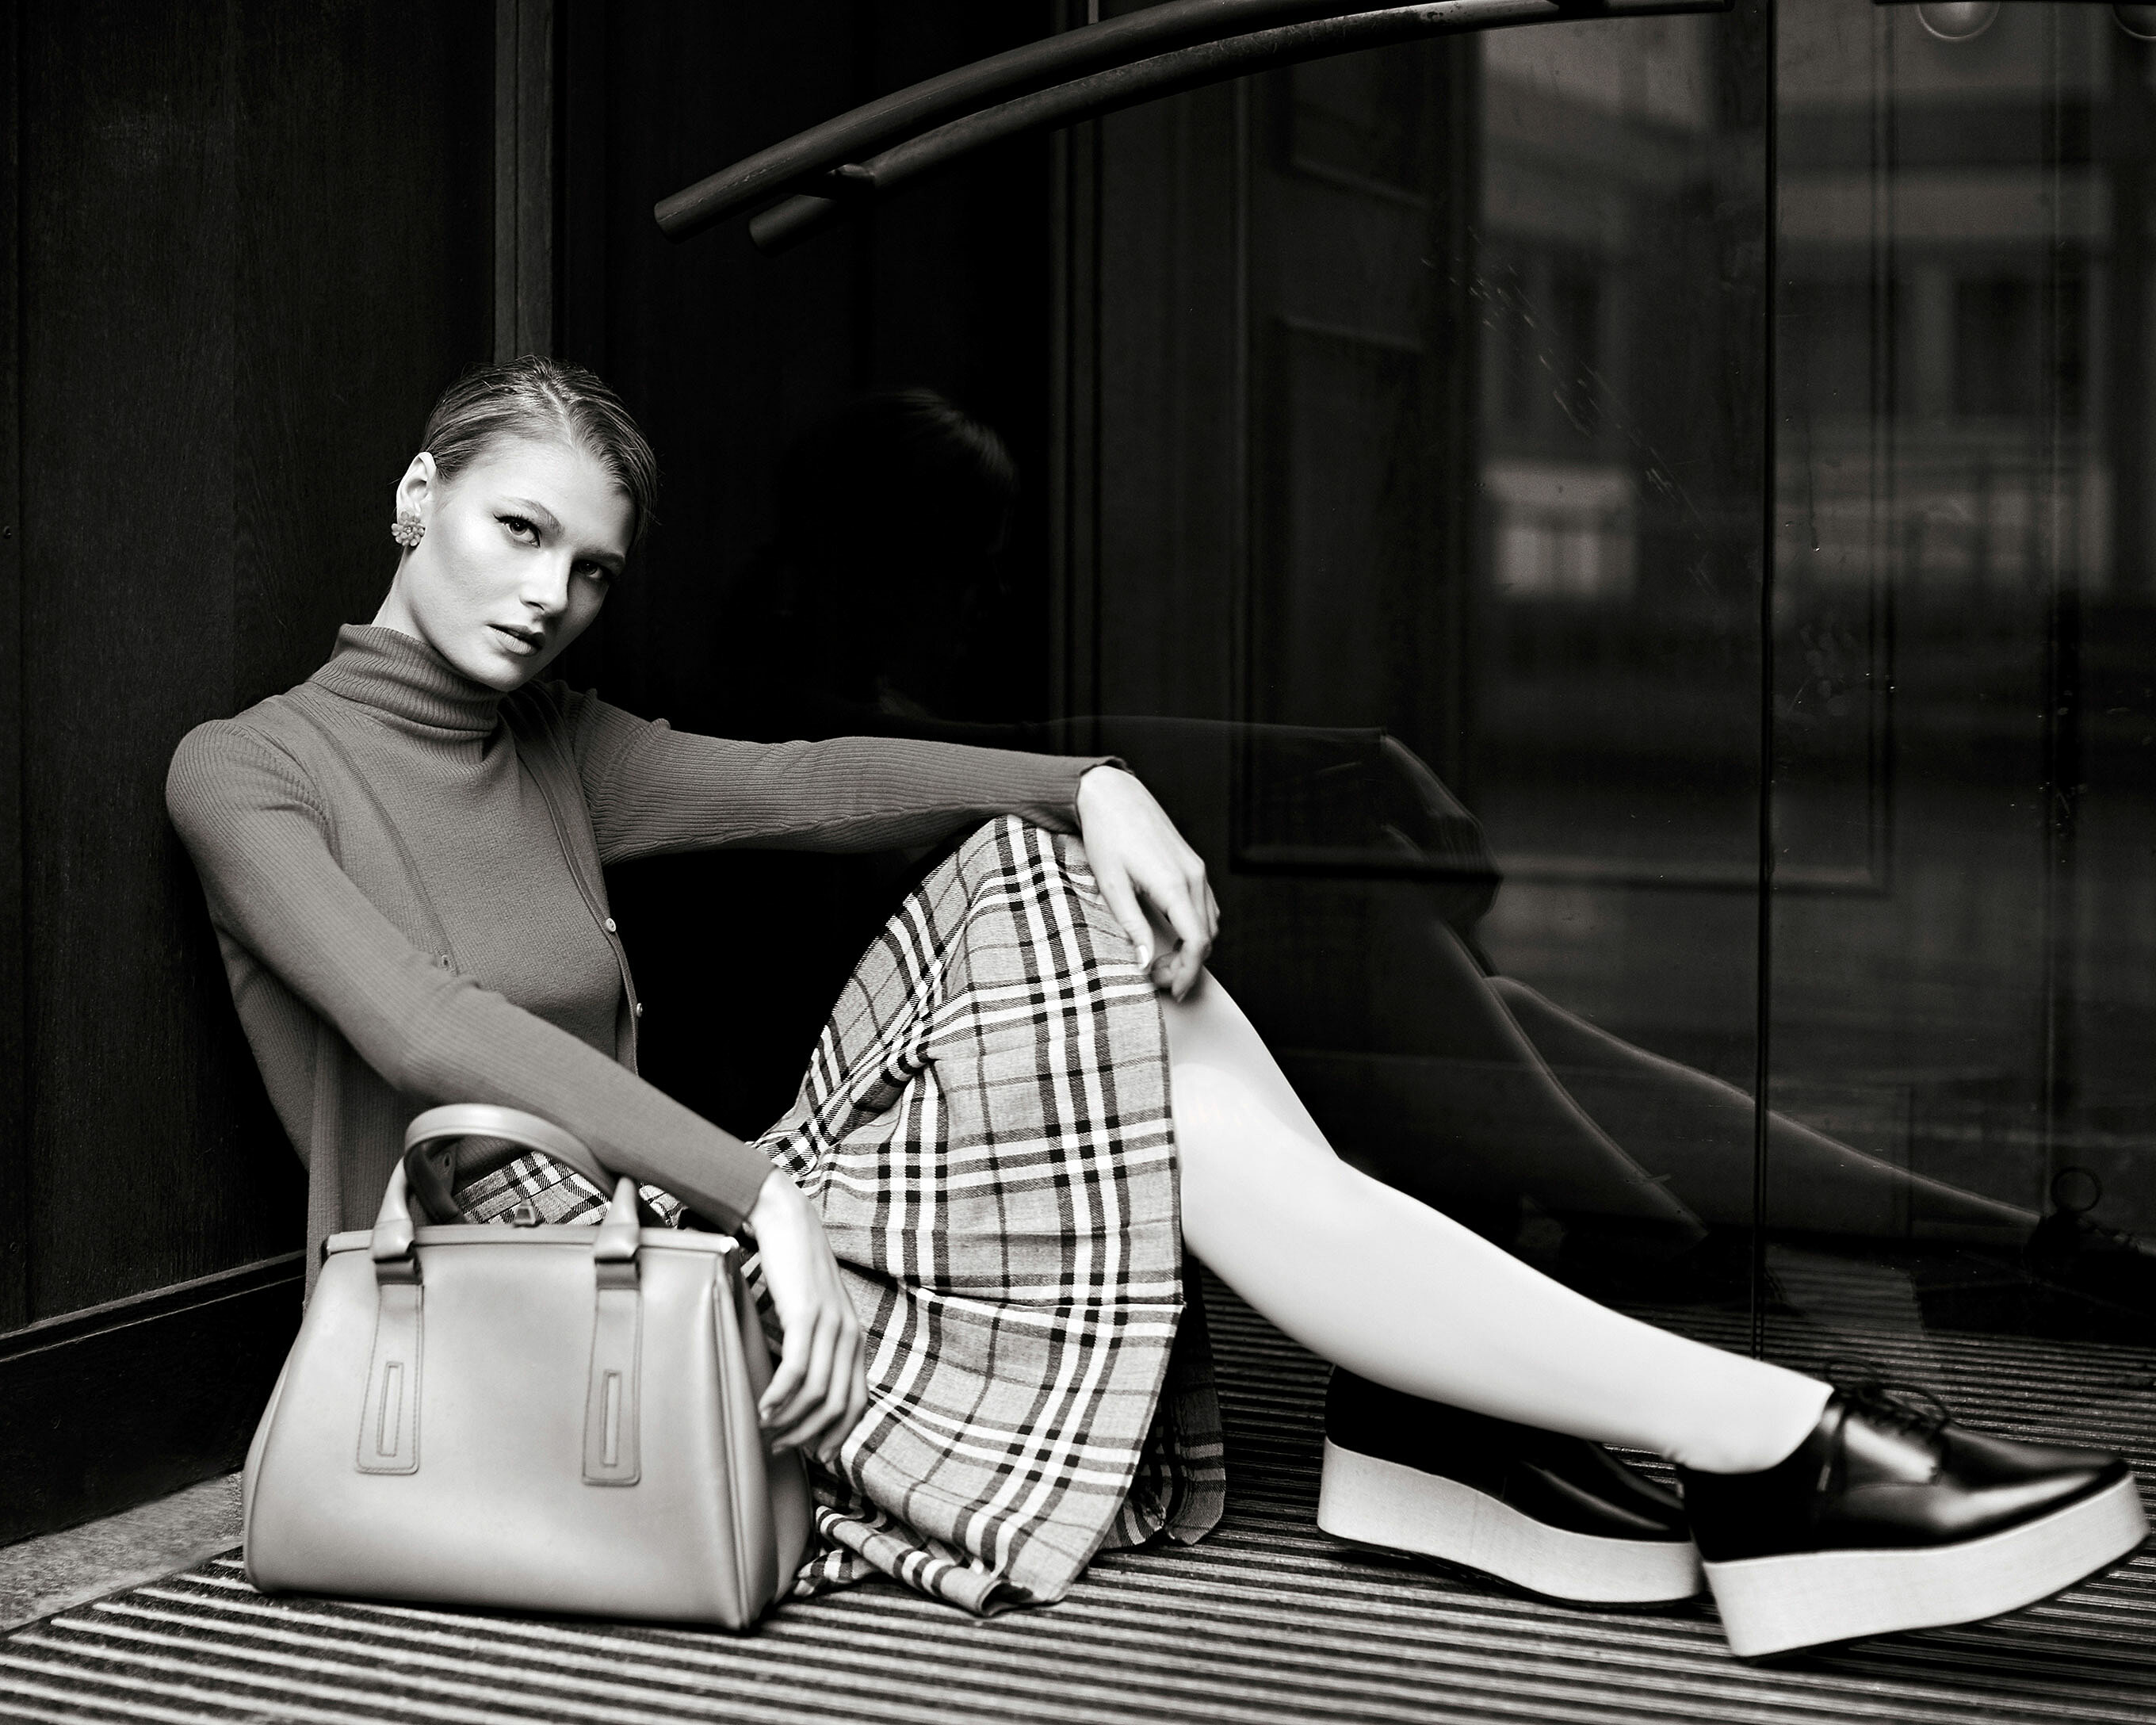 A blonde model sit in the entry of a church. The model wears a pullover and a cardigan combine with a checked skirt, white tights and dark shoes. Hey handbag stand in front of her hips